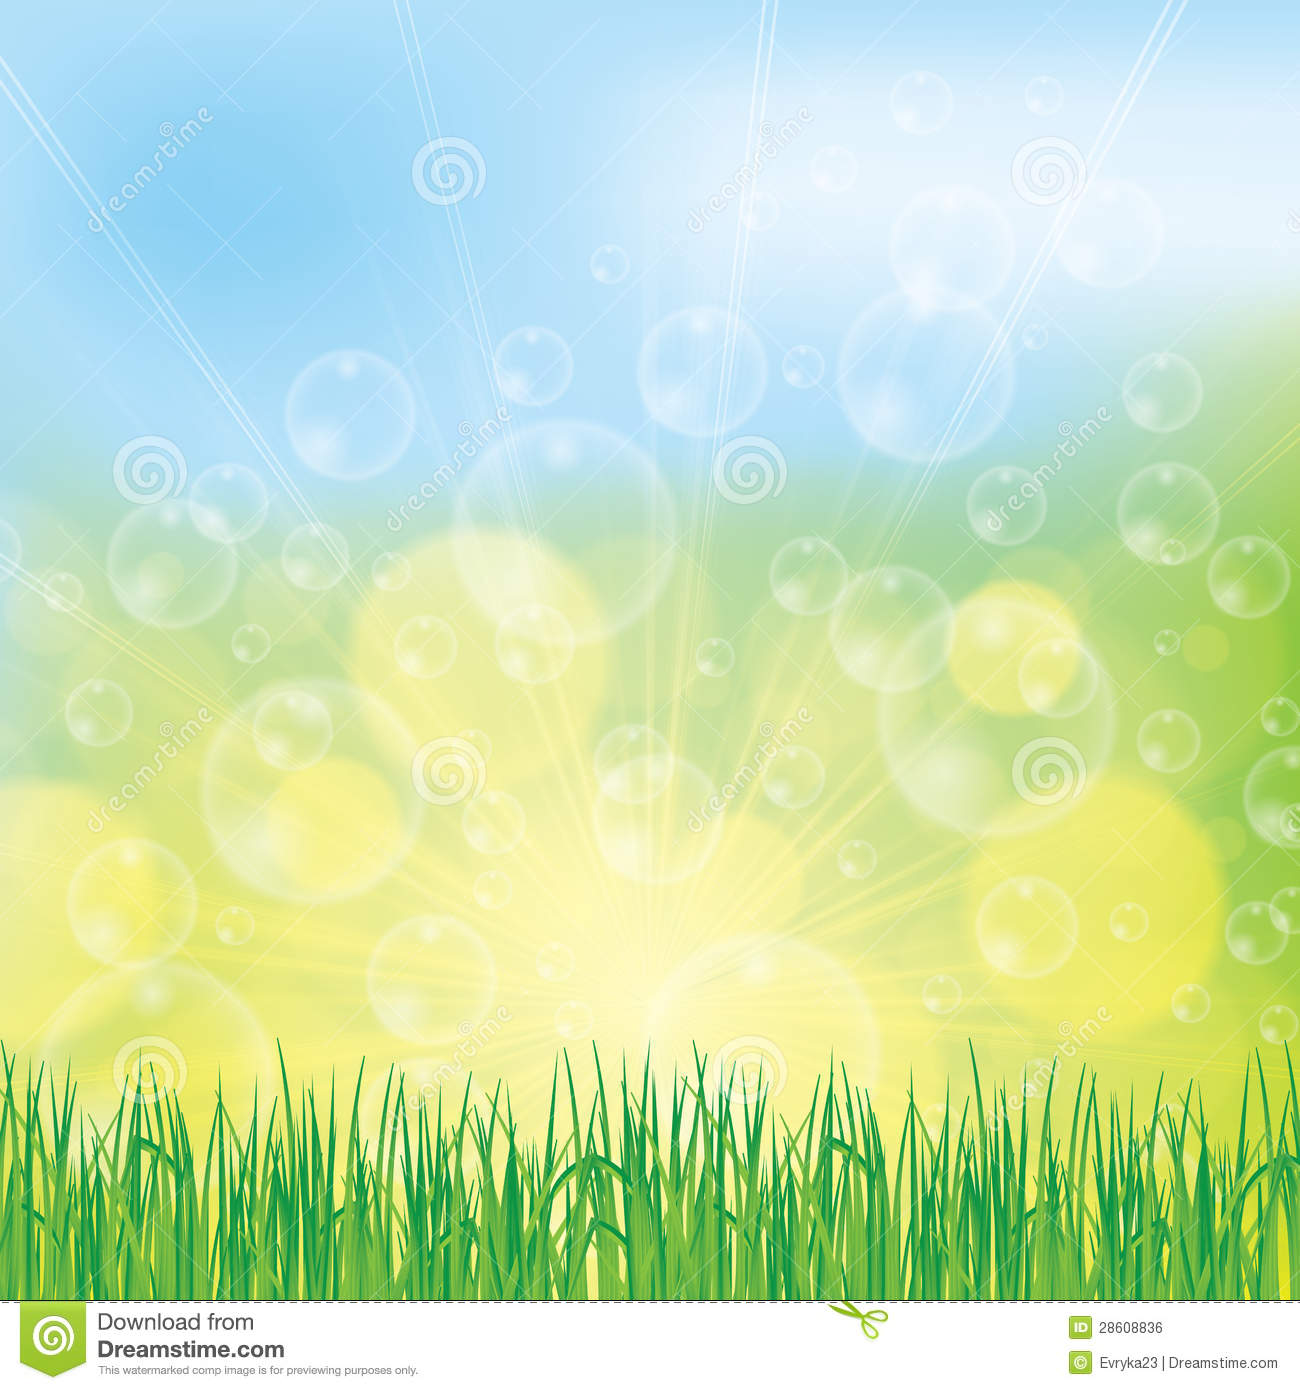 spring abstract background - photo #48